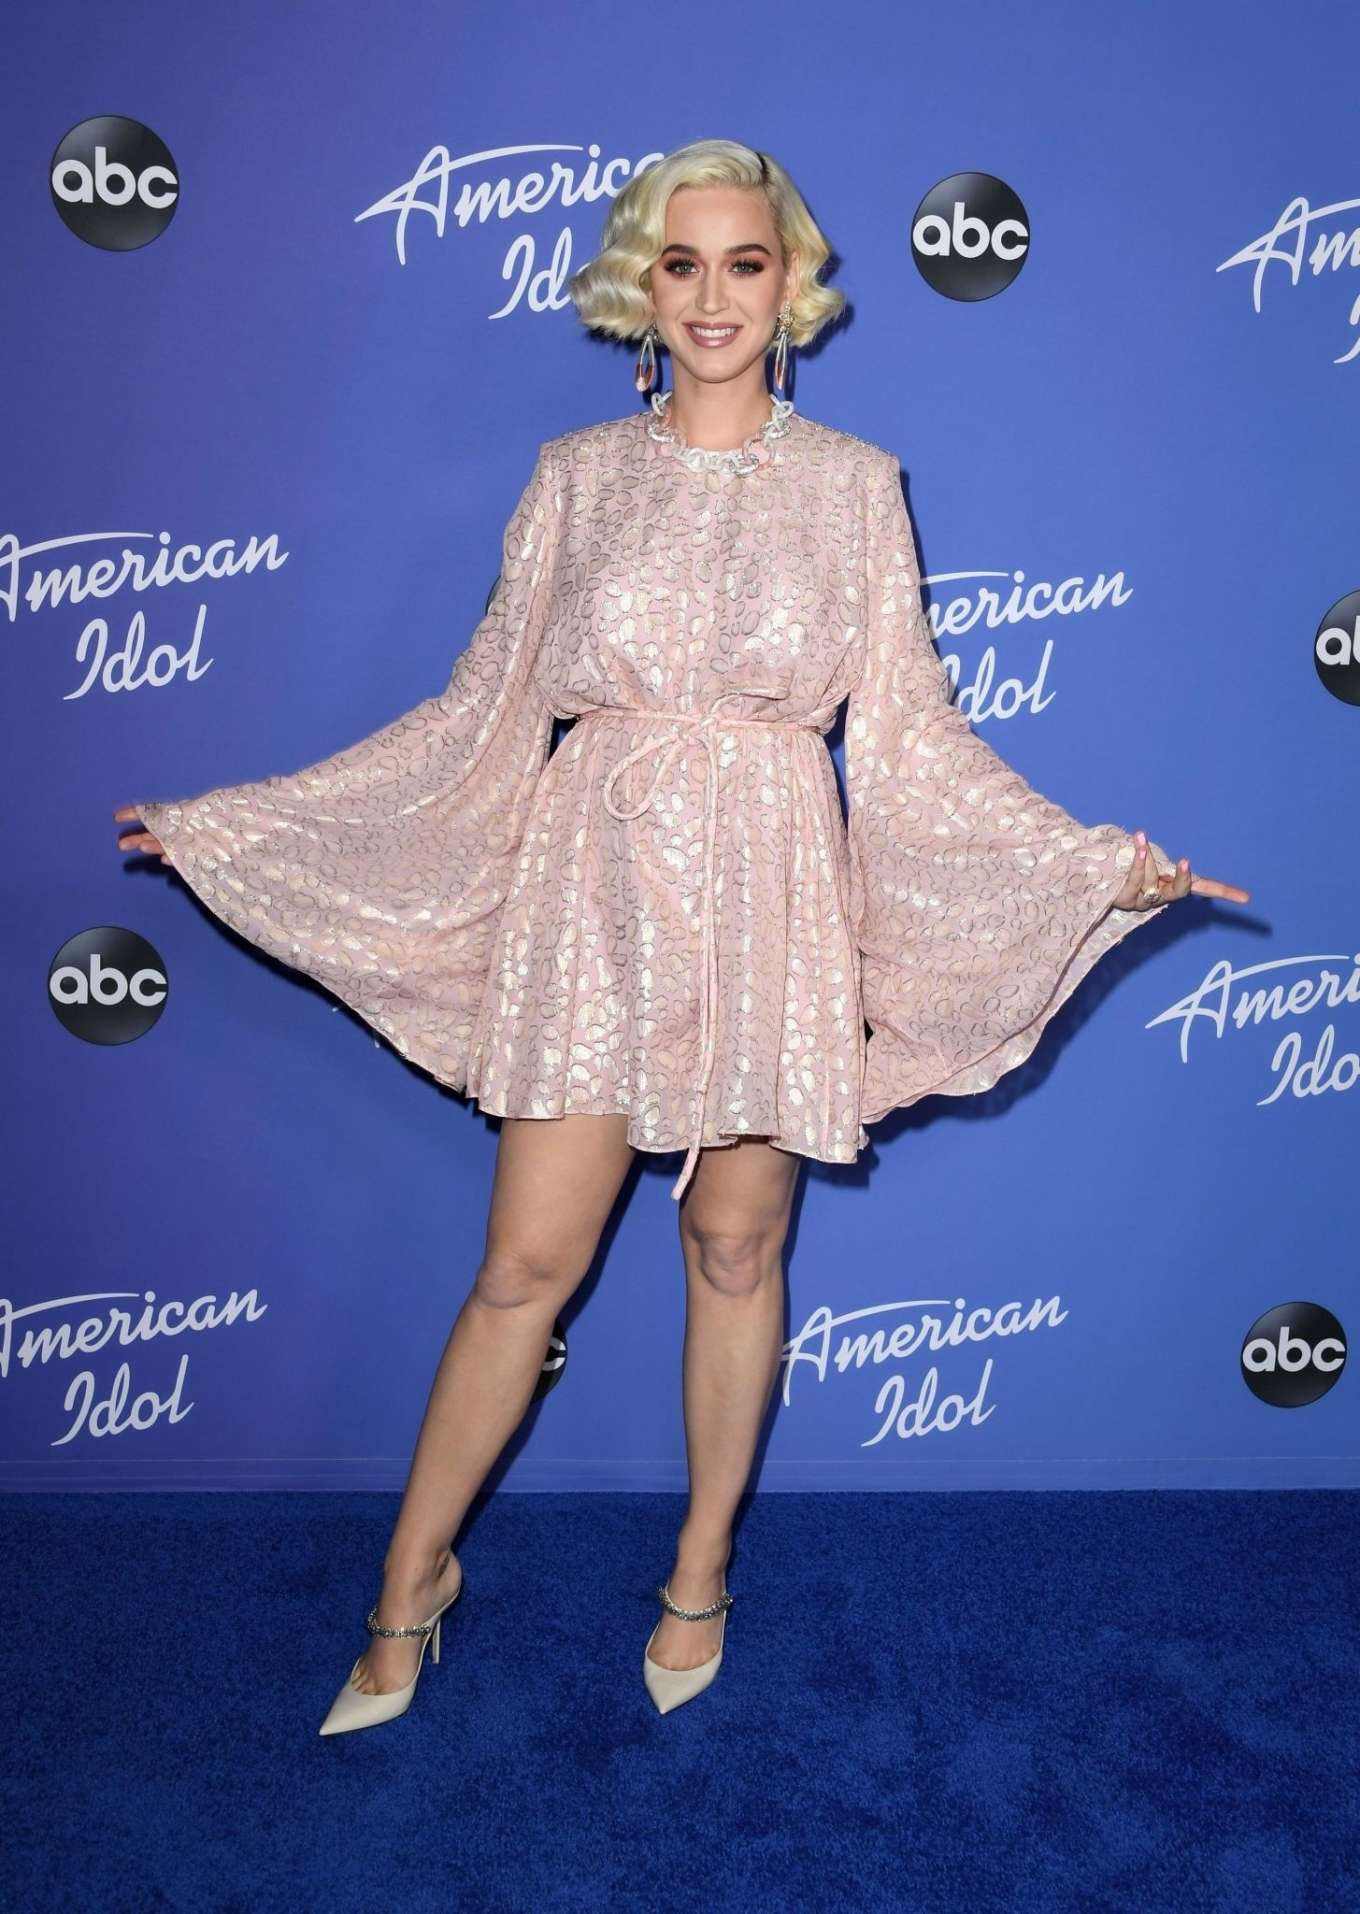 Katy Perry 2020 : Katy Perry – premiere event for new American Idol season in Hollywood-02